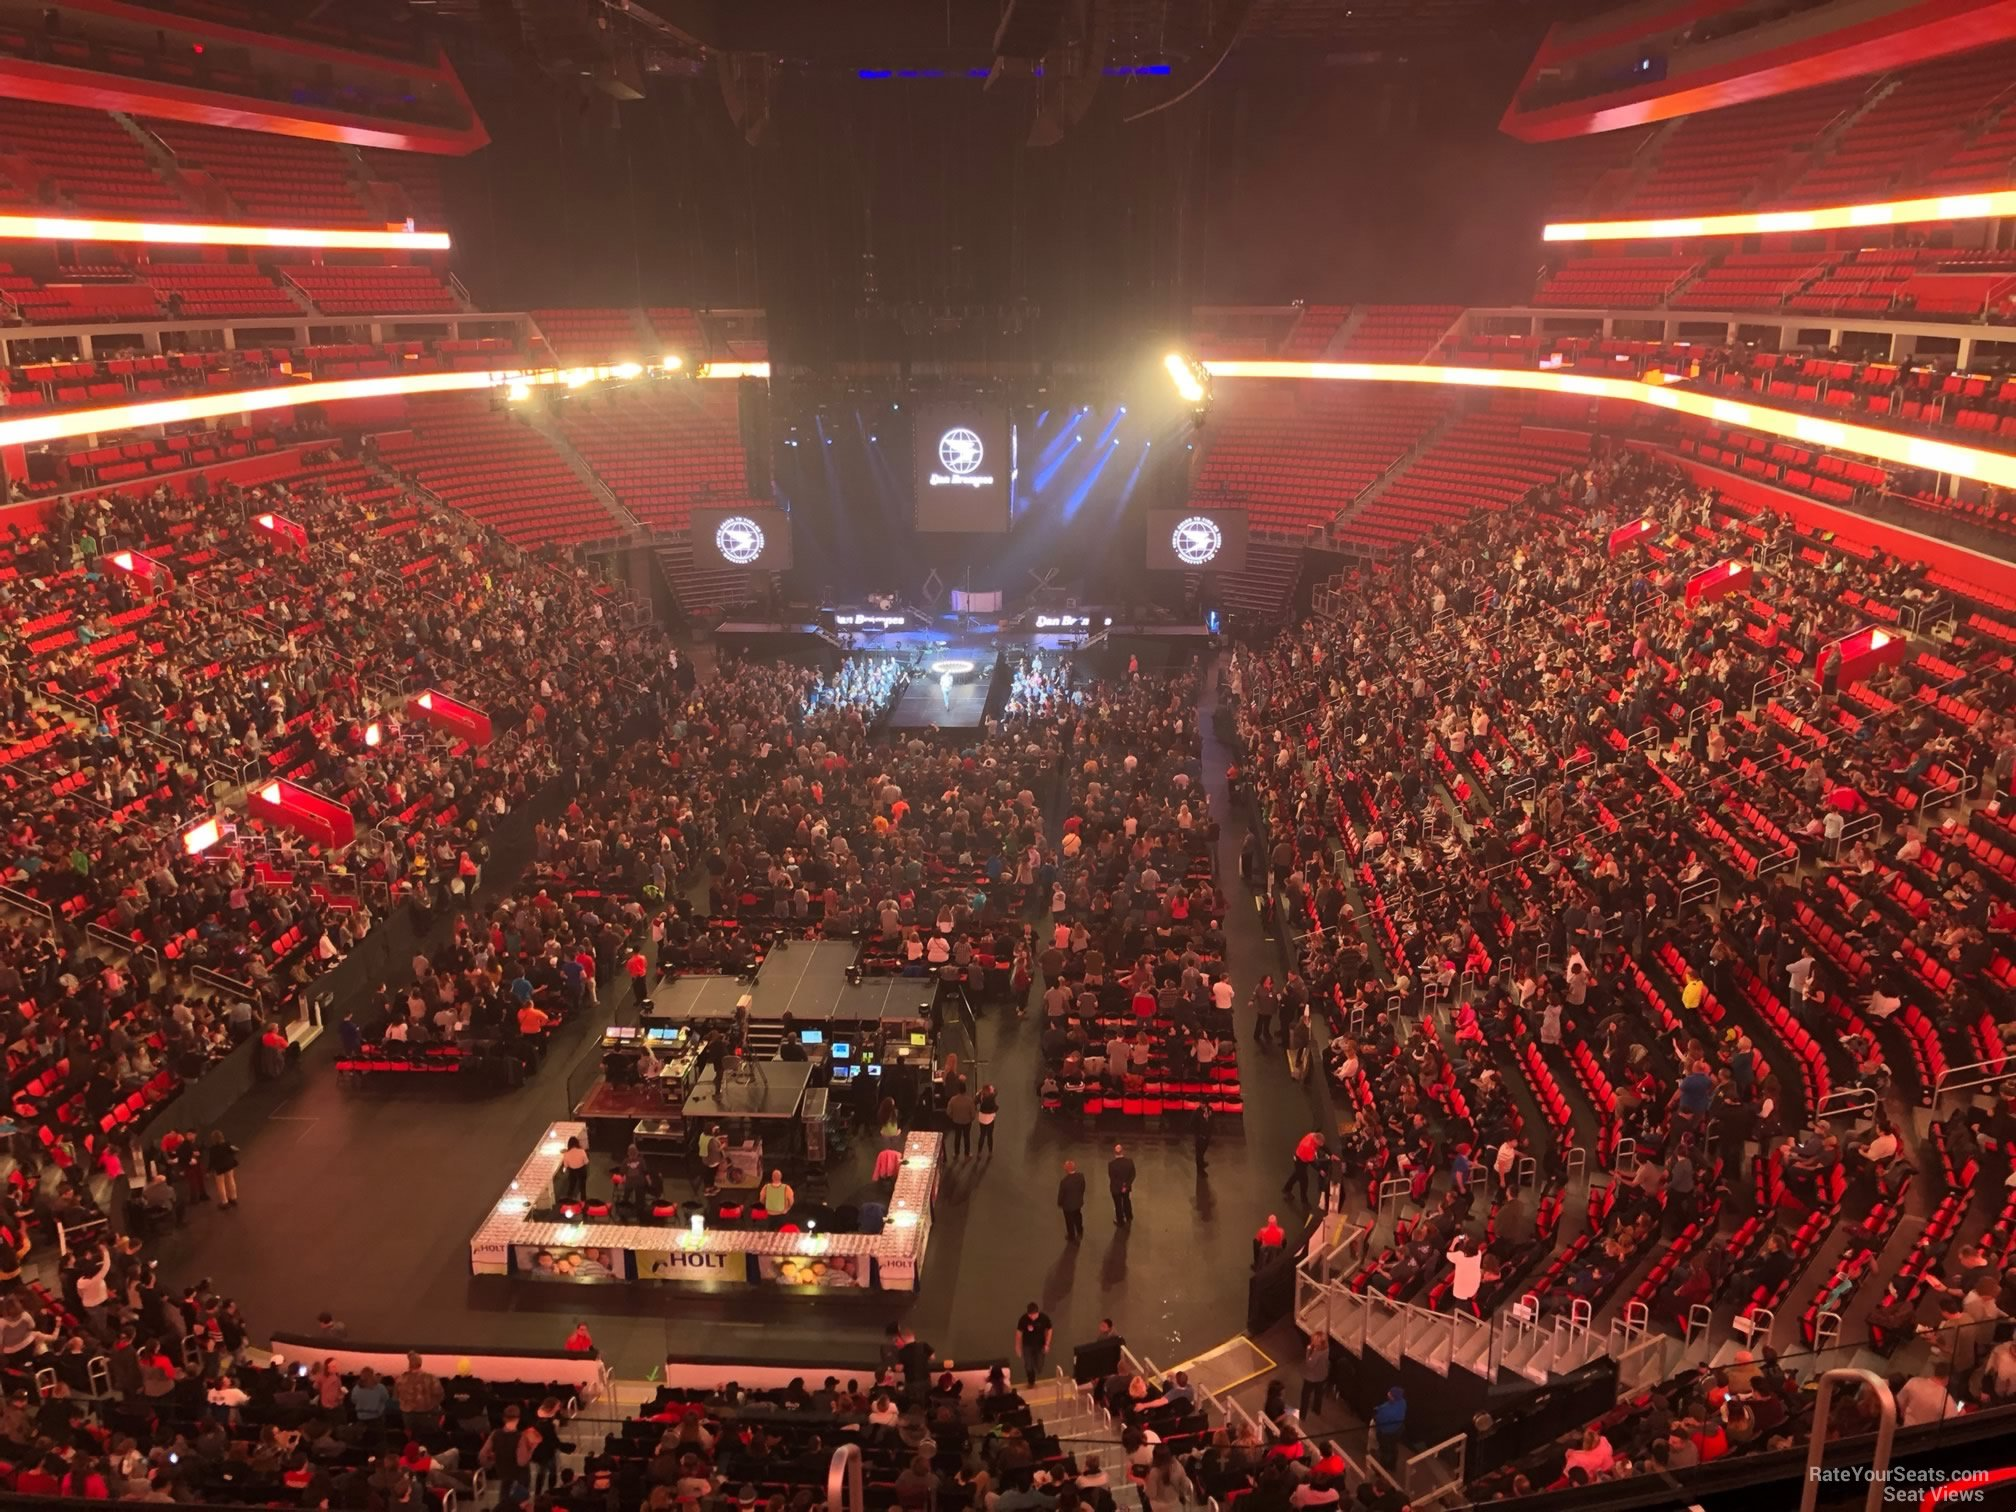 Concert Seat View for Little Caesars Arena Mezzanine 19, Row 2